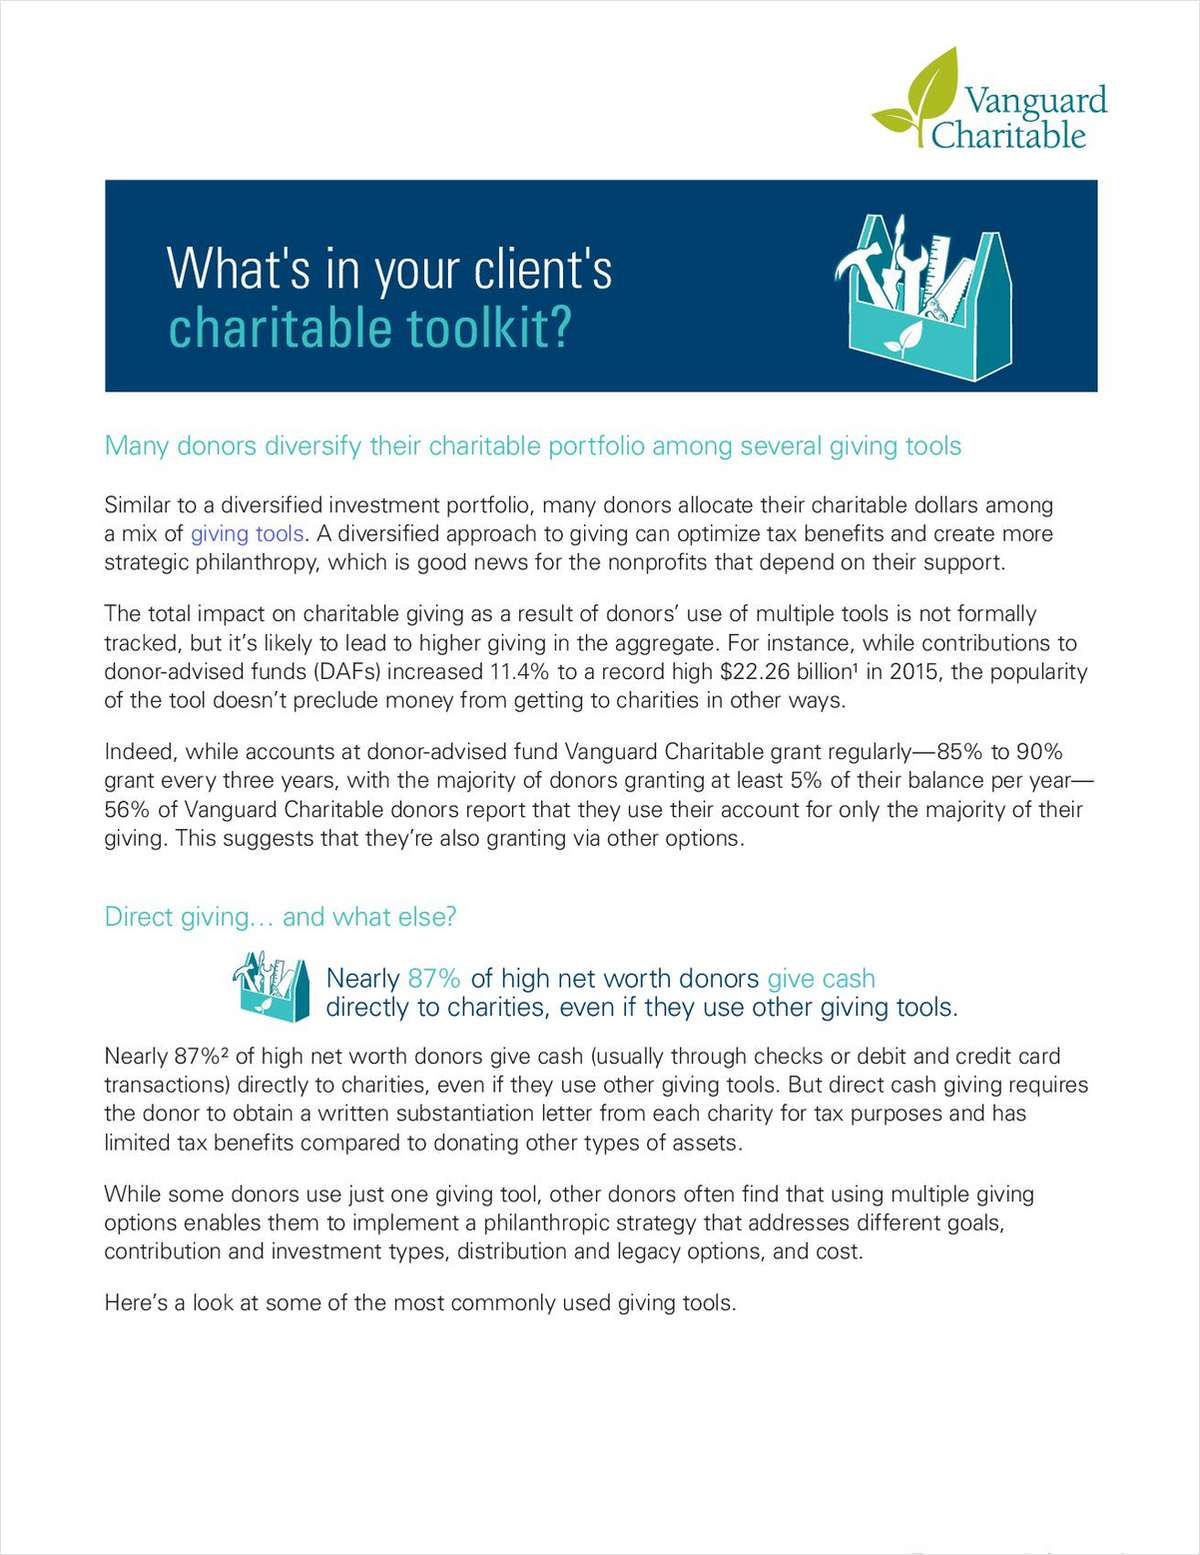 What's in Your Client's Charitable Toolkit?